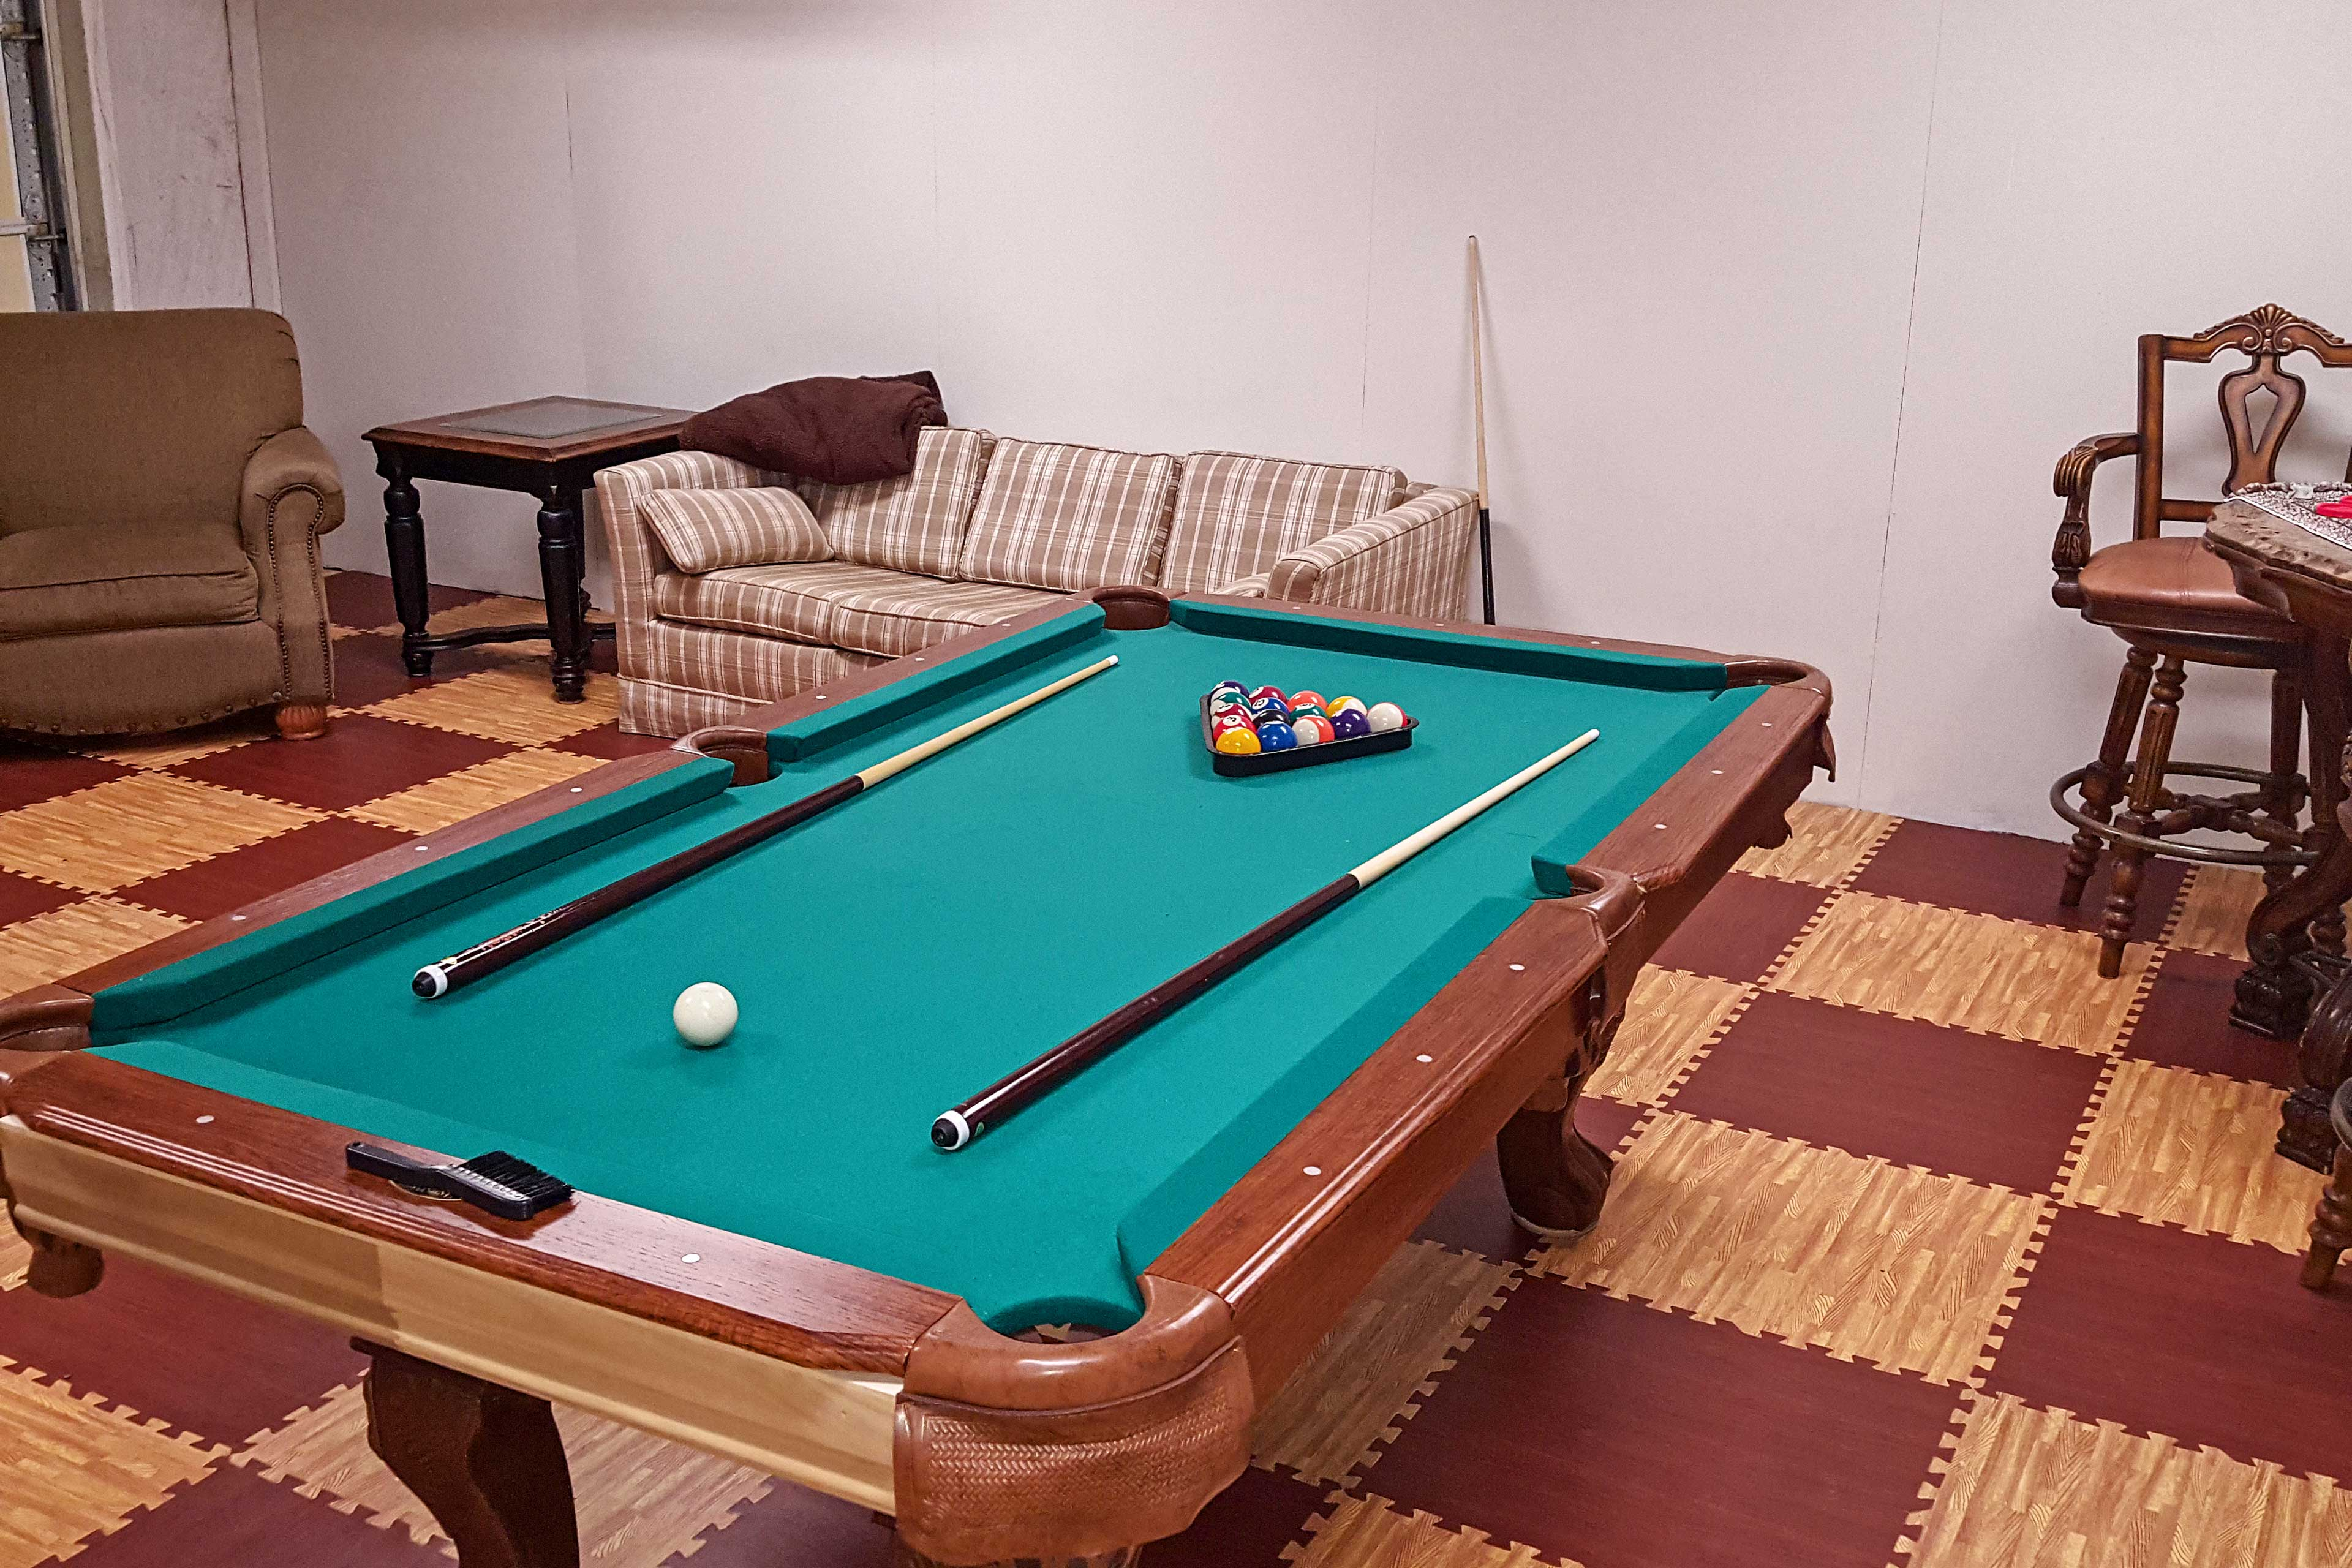 Rack 'em up and shoot some pool!